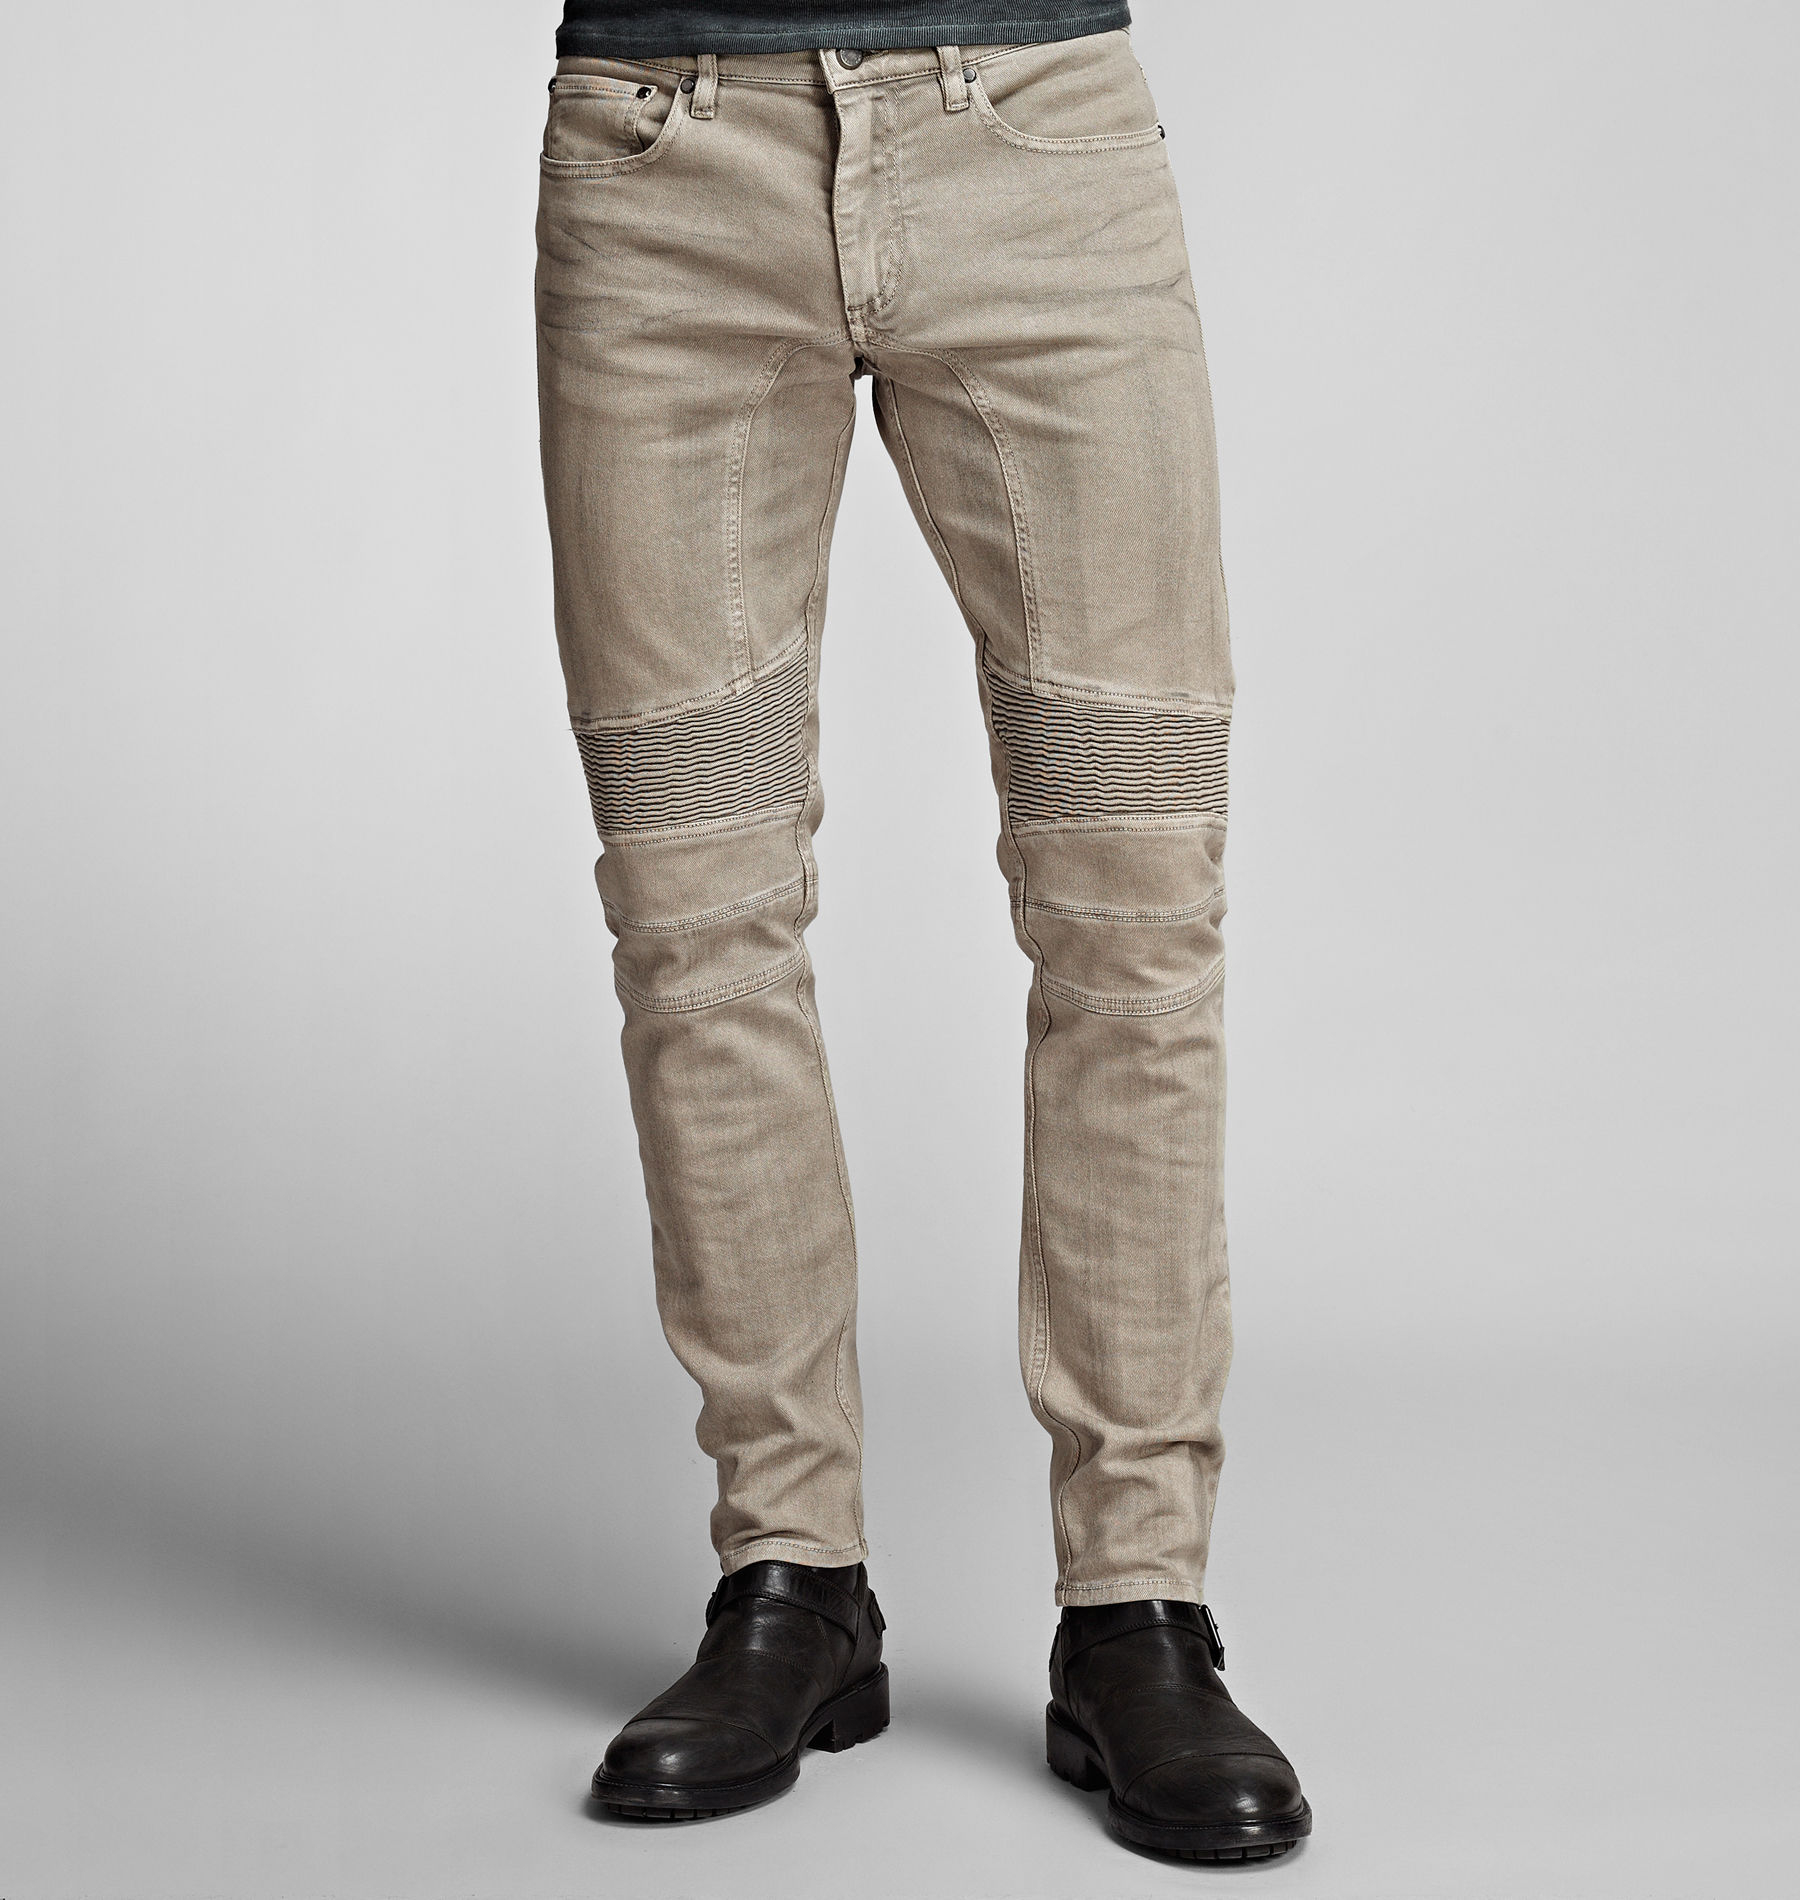 48a3931f8251 Belstaff Slim Fit Eastham Jeans in Brown for Men - Lyst